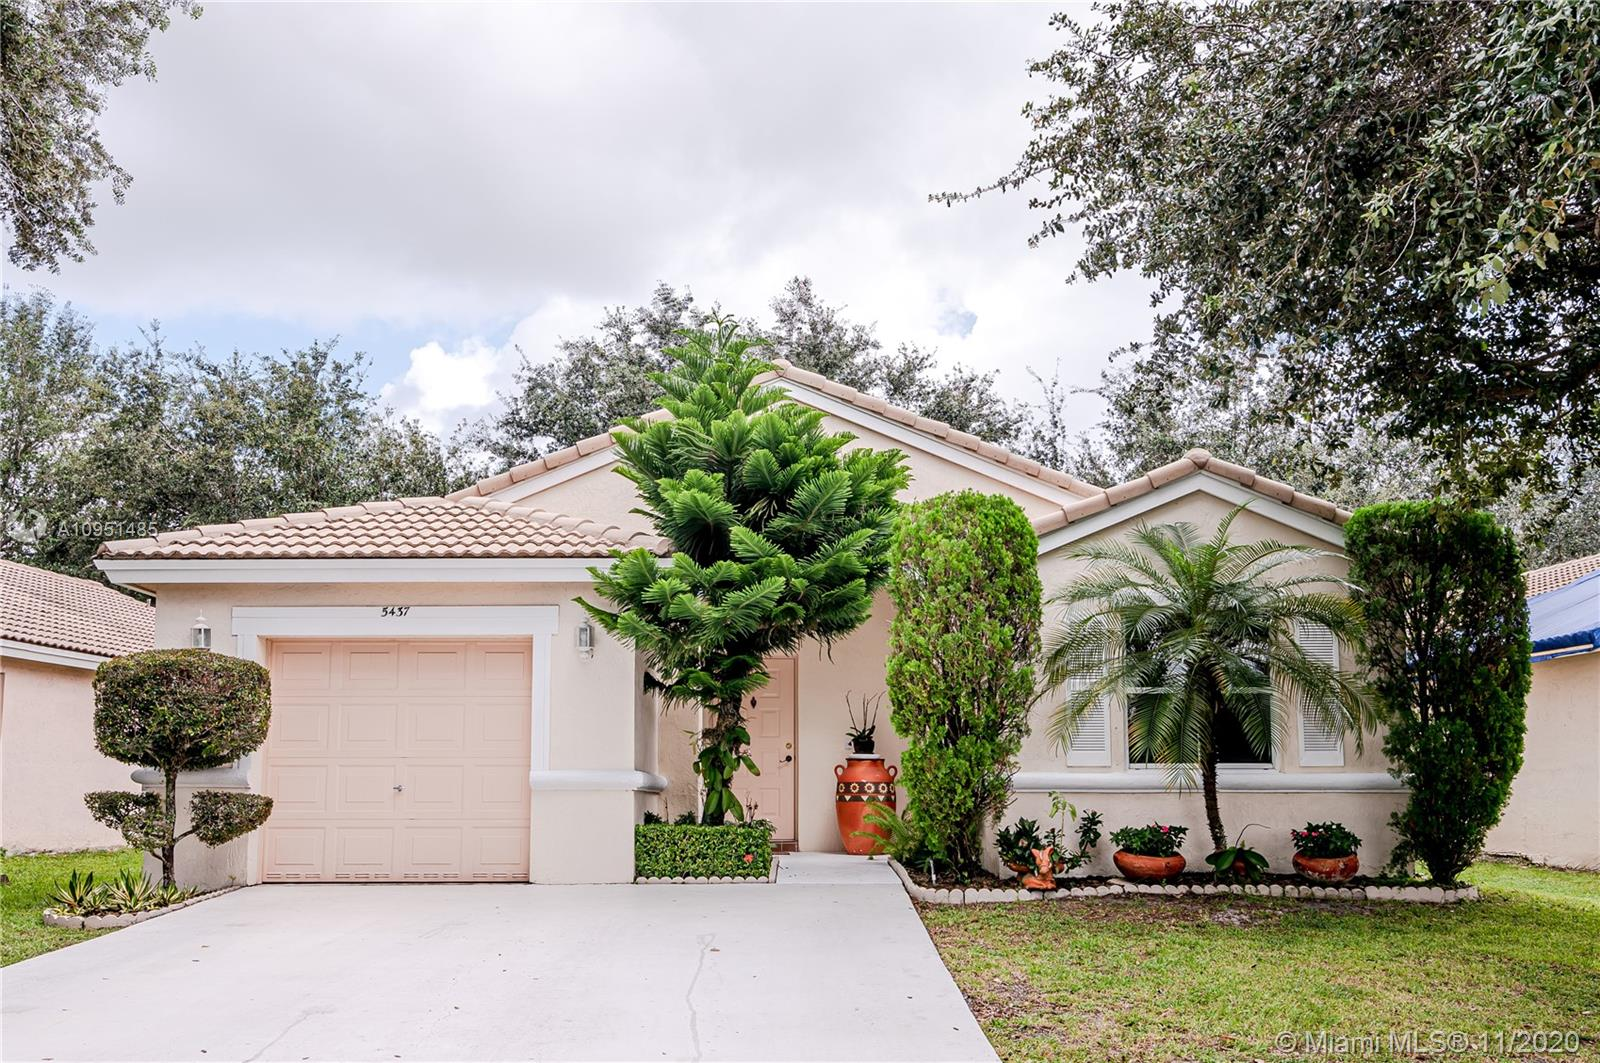 """Amazing community in the heart of Coconut Creek.  Within minutes to dining, shopping, casino, entertainment, A rated school district and so much more.  This home has all you need with a spacious master bedroom with vaulted ceilings and walk in closet as well as master bathroom with shower and bathtub.  The home features a 2nd bedroom, a Den which is used as an office but can be easily converted into a 3rd bedroom as well as a CONVERTED GARAGE which is a perfect place for Movie times  or a """"Man Cave"""".  Backyard is fenced and spacious for barbecues or gardening. Newer AC unit replaced in 2017. Come enjoy this move in ready home."""